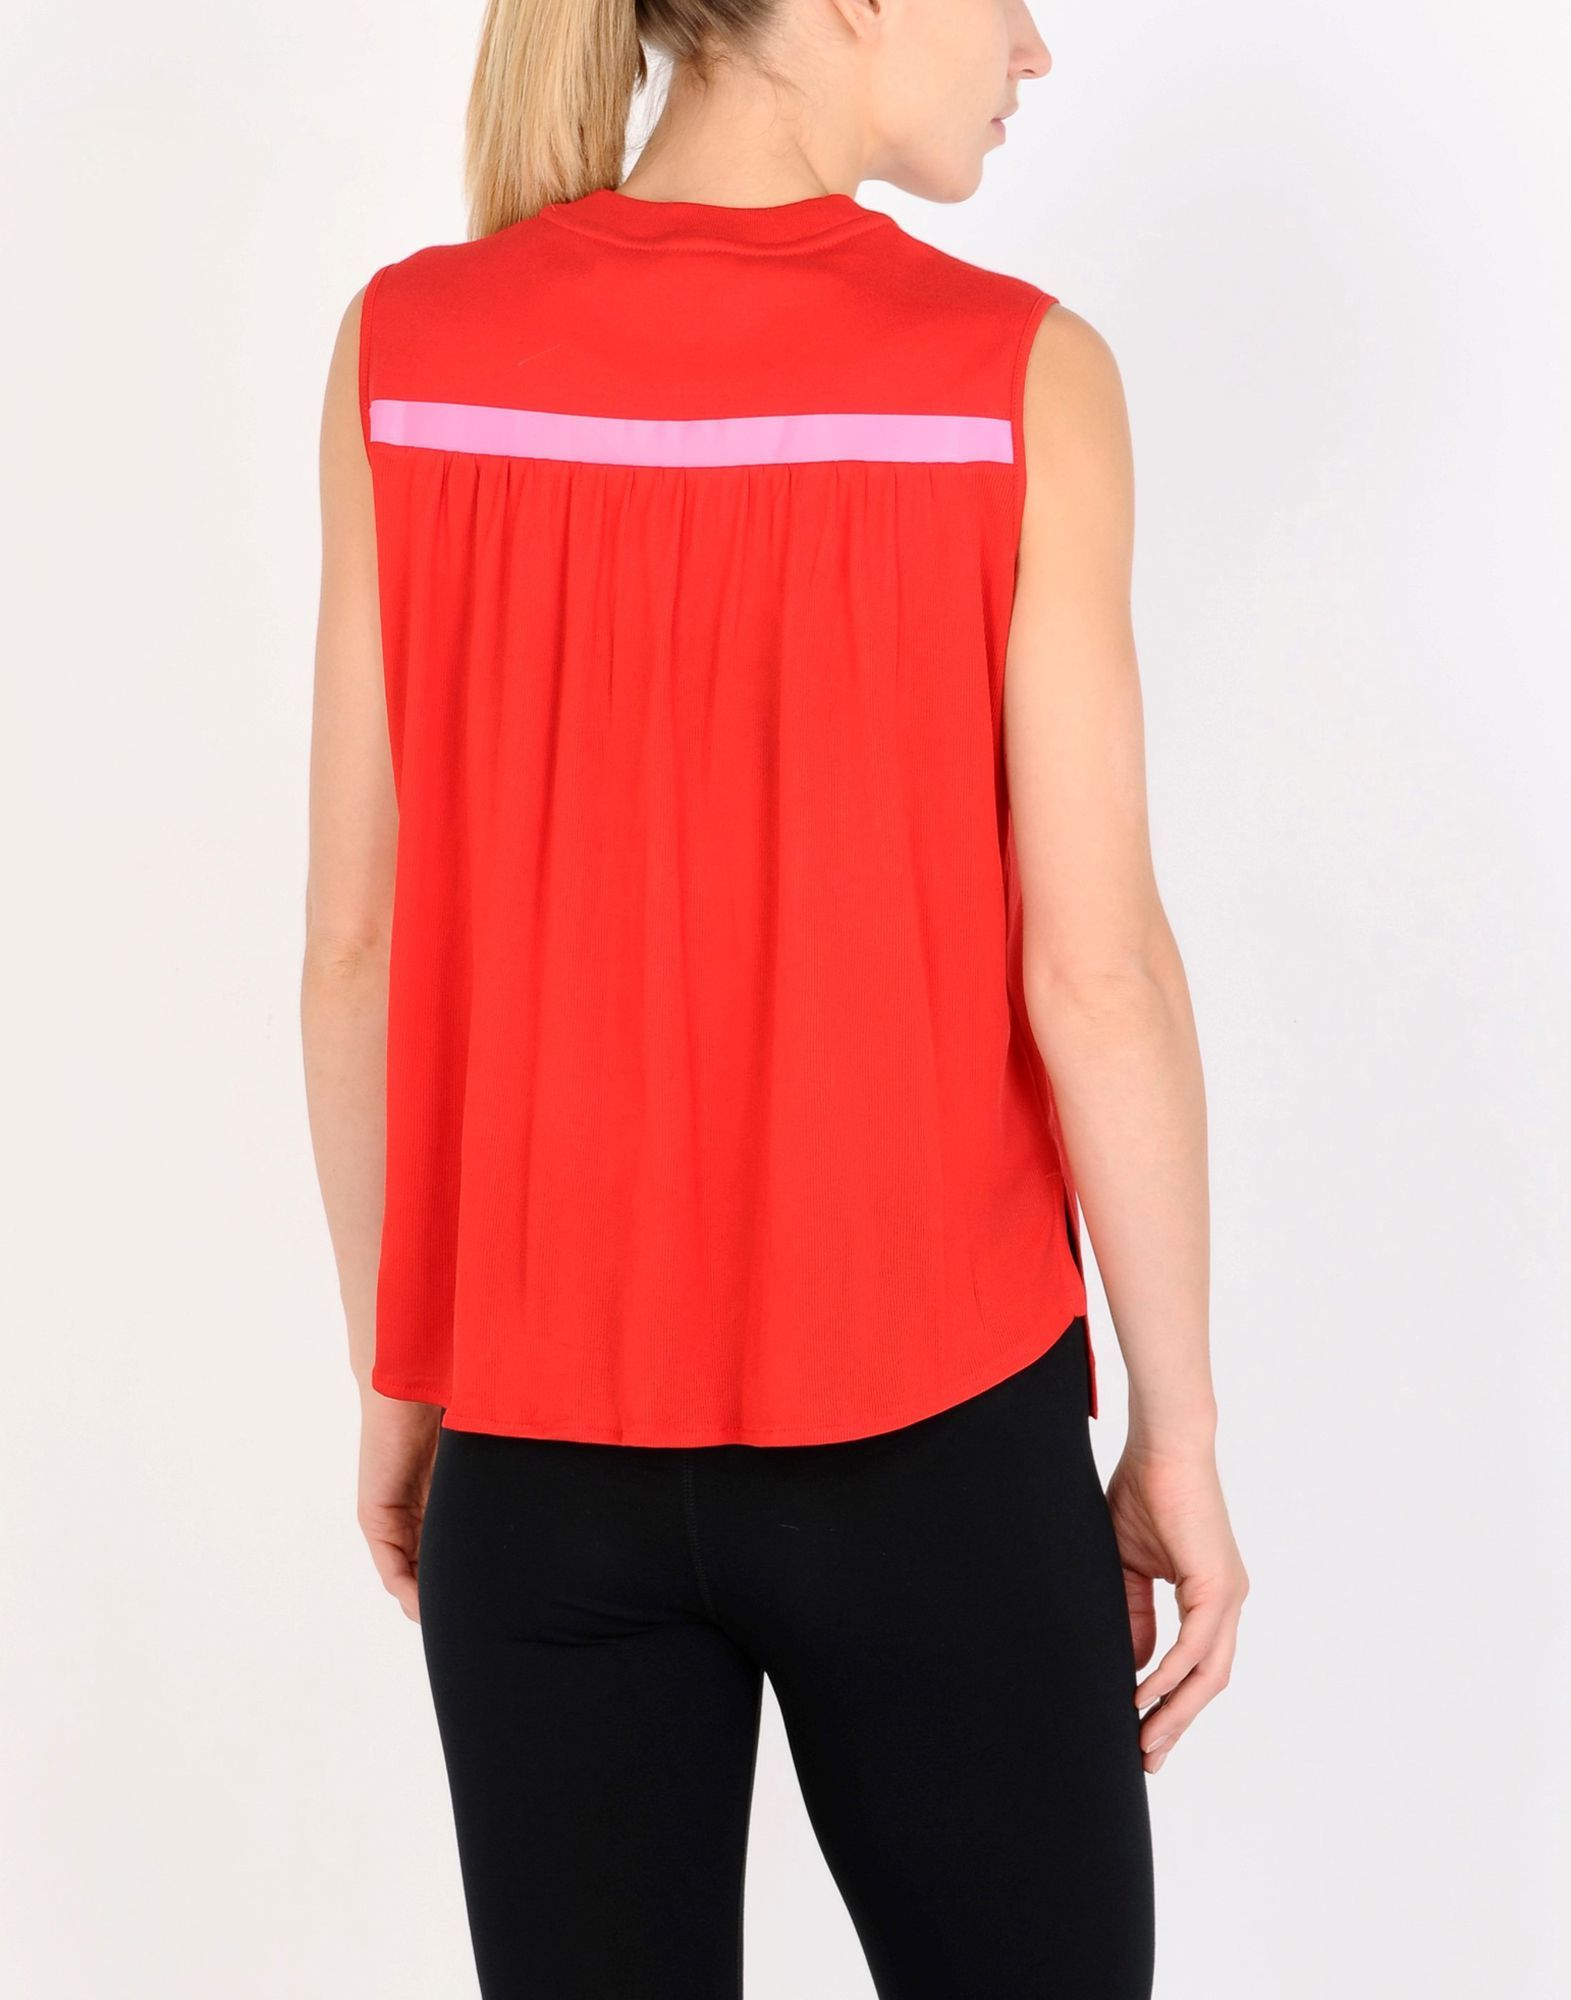 Nike Red Cotton Top